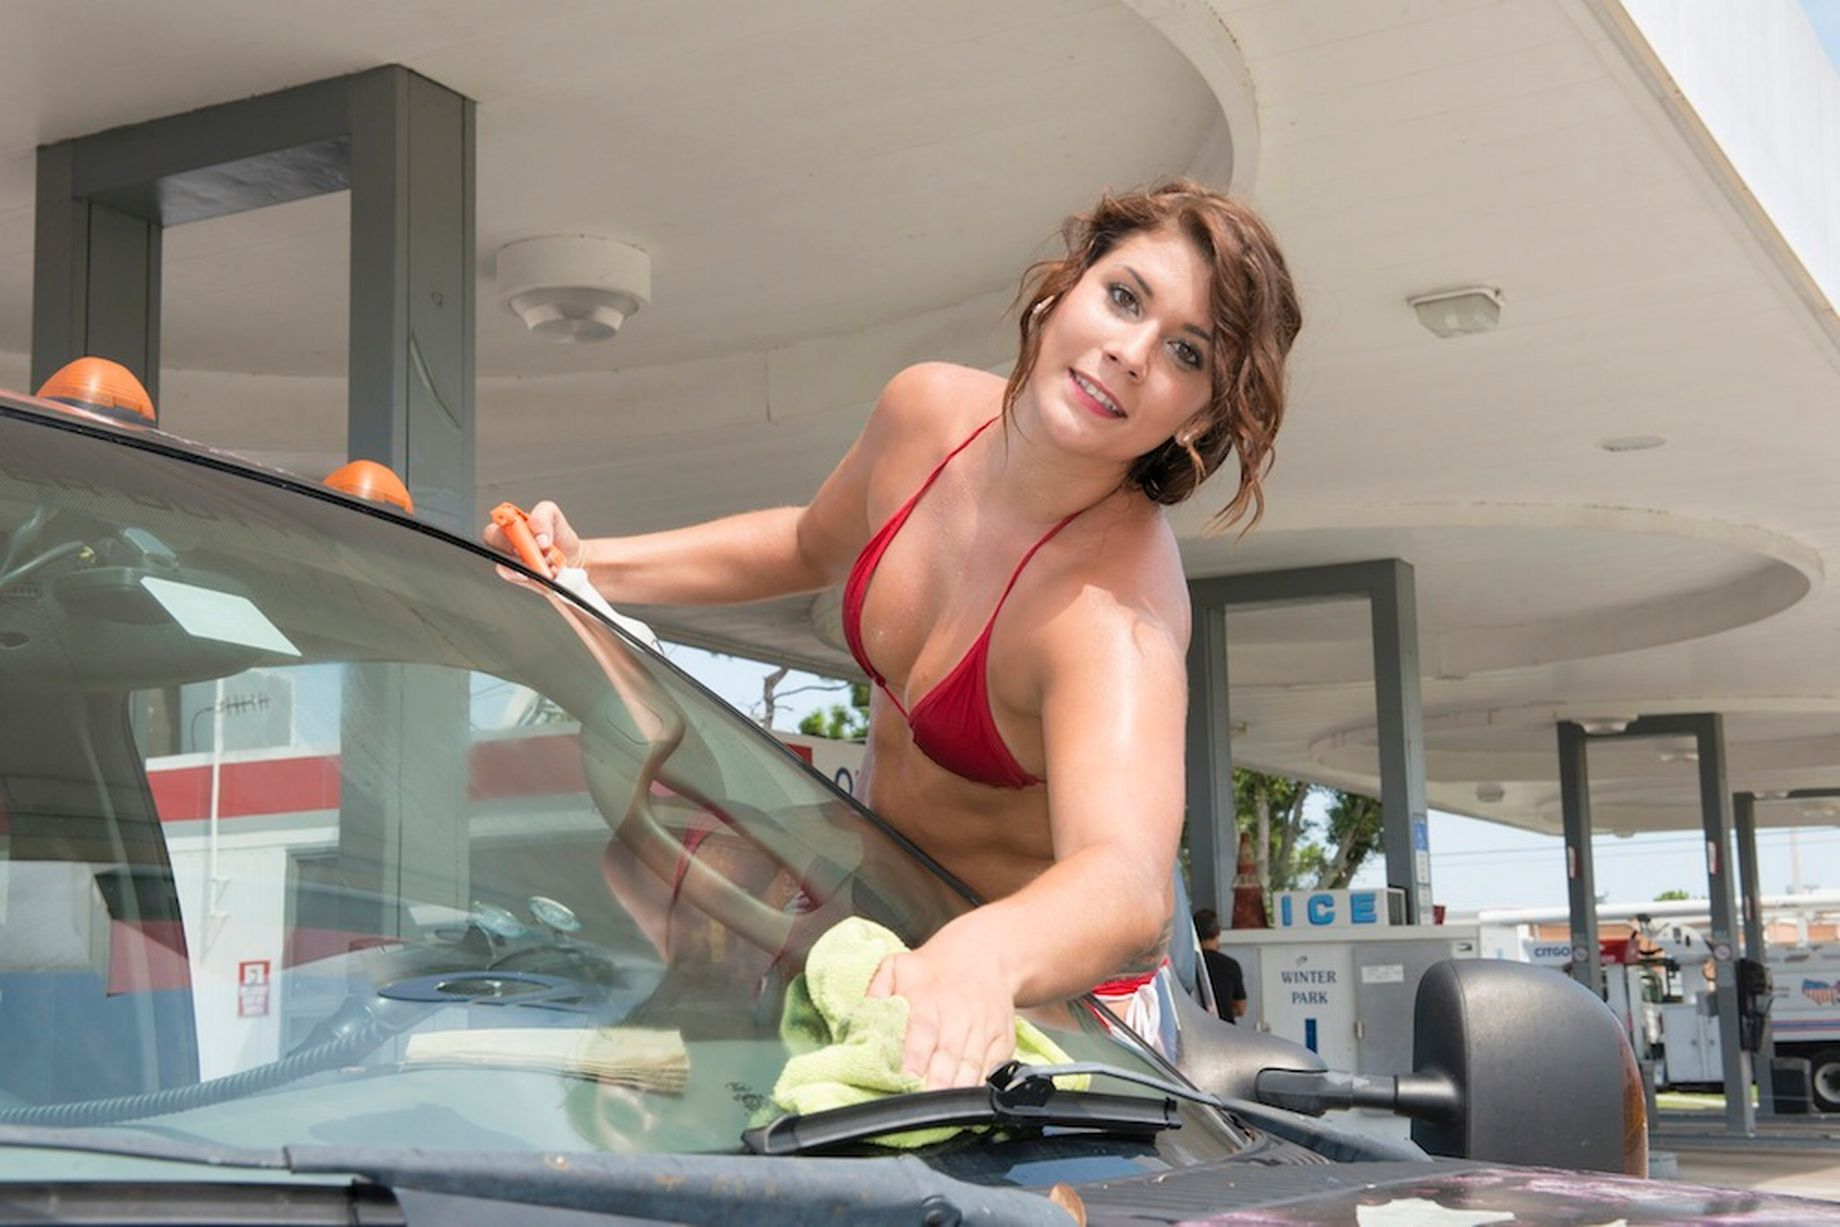 Baywash Sexy Bikini Girl Car Wash Photo Gallery - Autoblog Canada